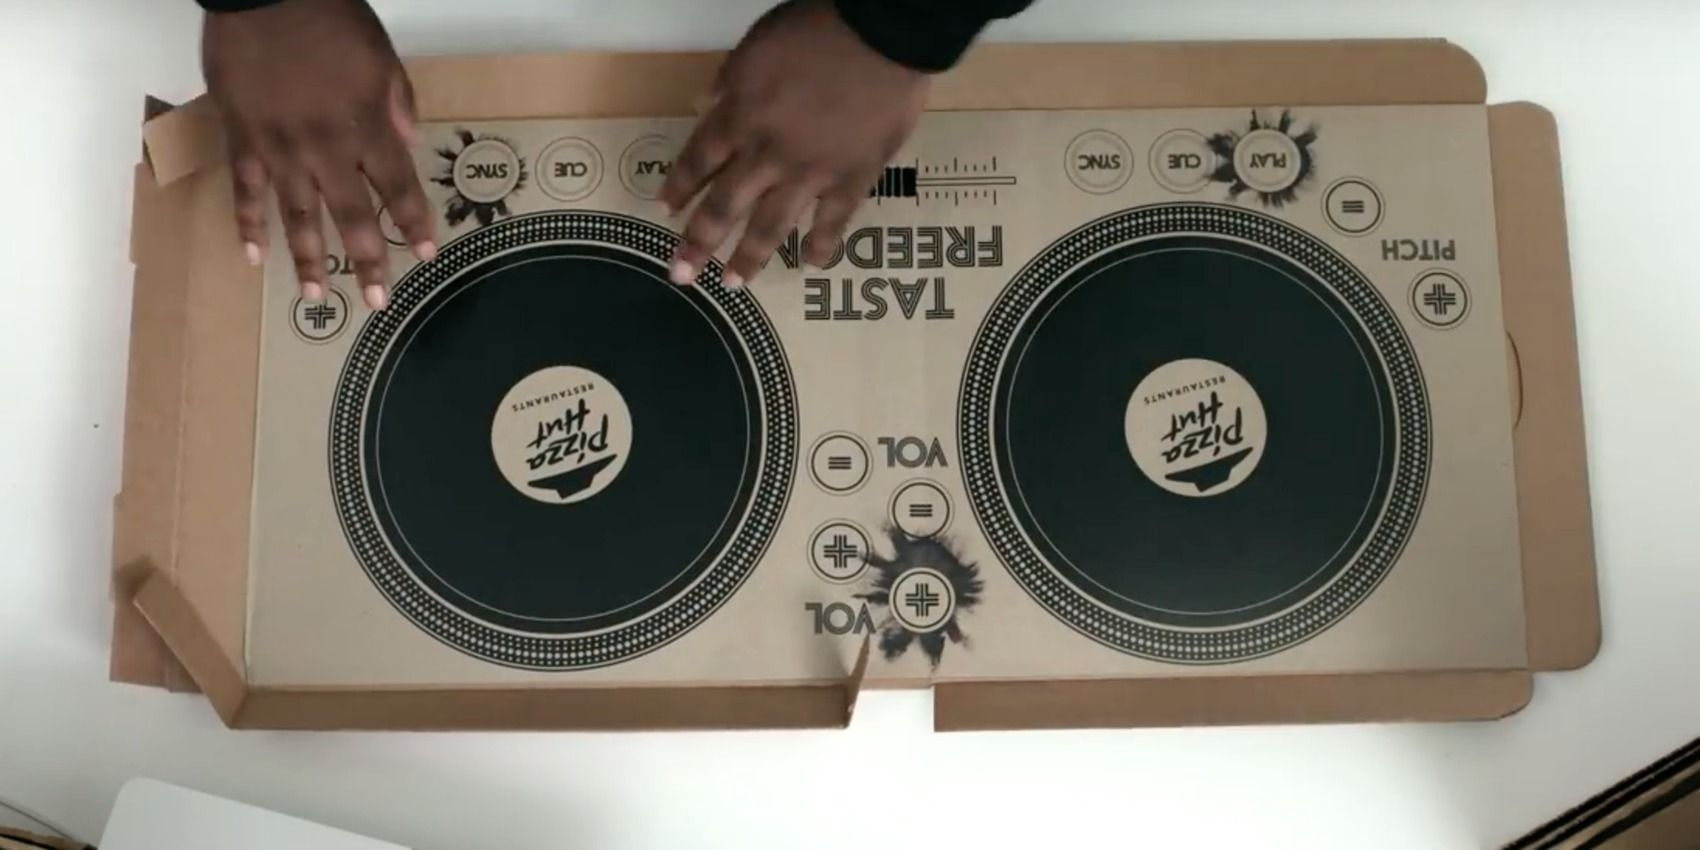 Pizza Hut S Musical Pizza Box Turns Dinner Into A Full On Rave Fast Food Pizza Hut Pizza Boxes Pizza